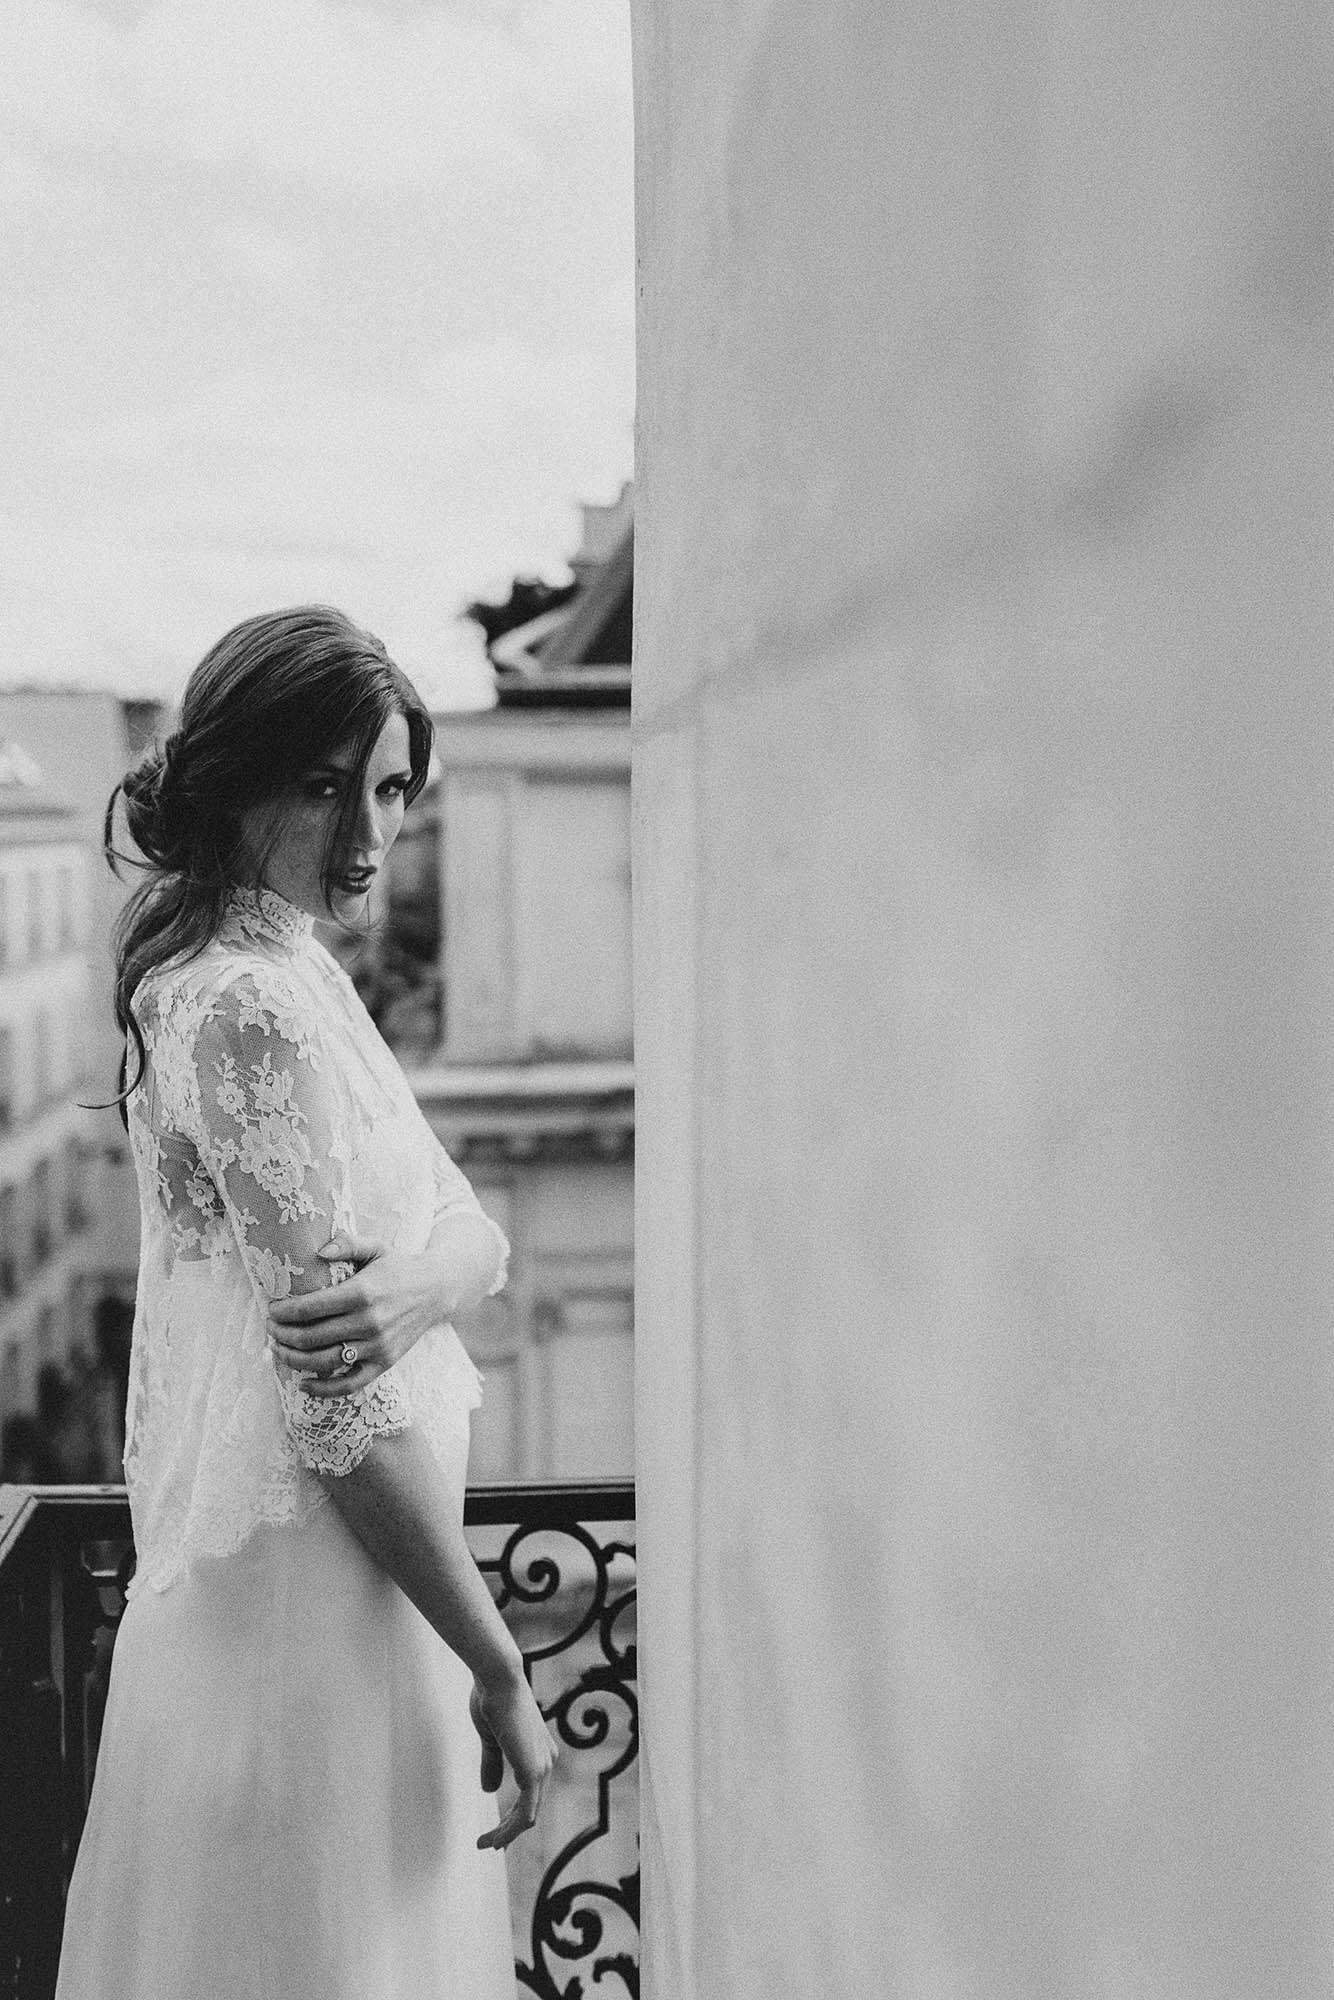 youmademydayphotography-destination-wedding-photographer-david-purves-boheme-rock-paris-web-128